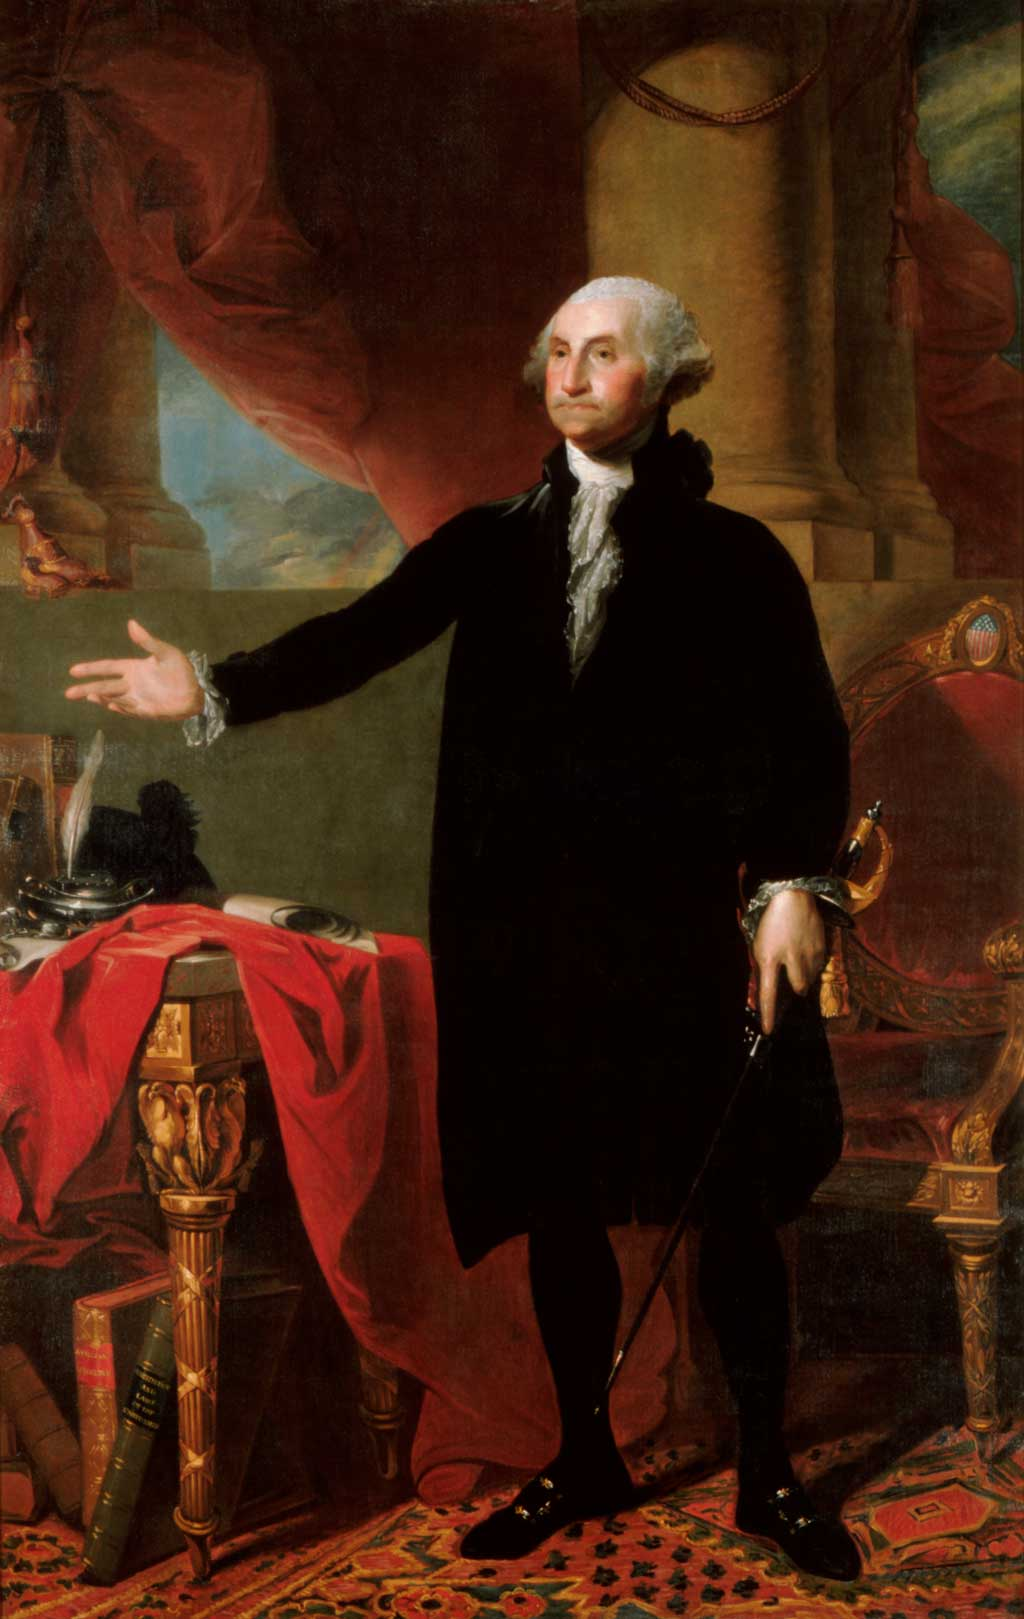 Portrait of George Washington standing